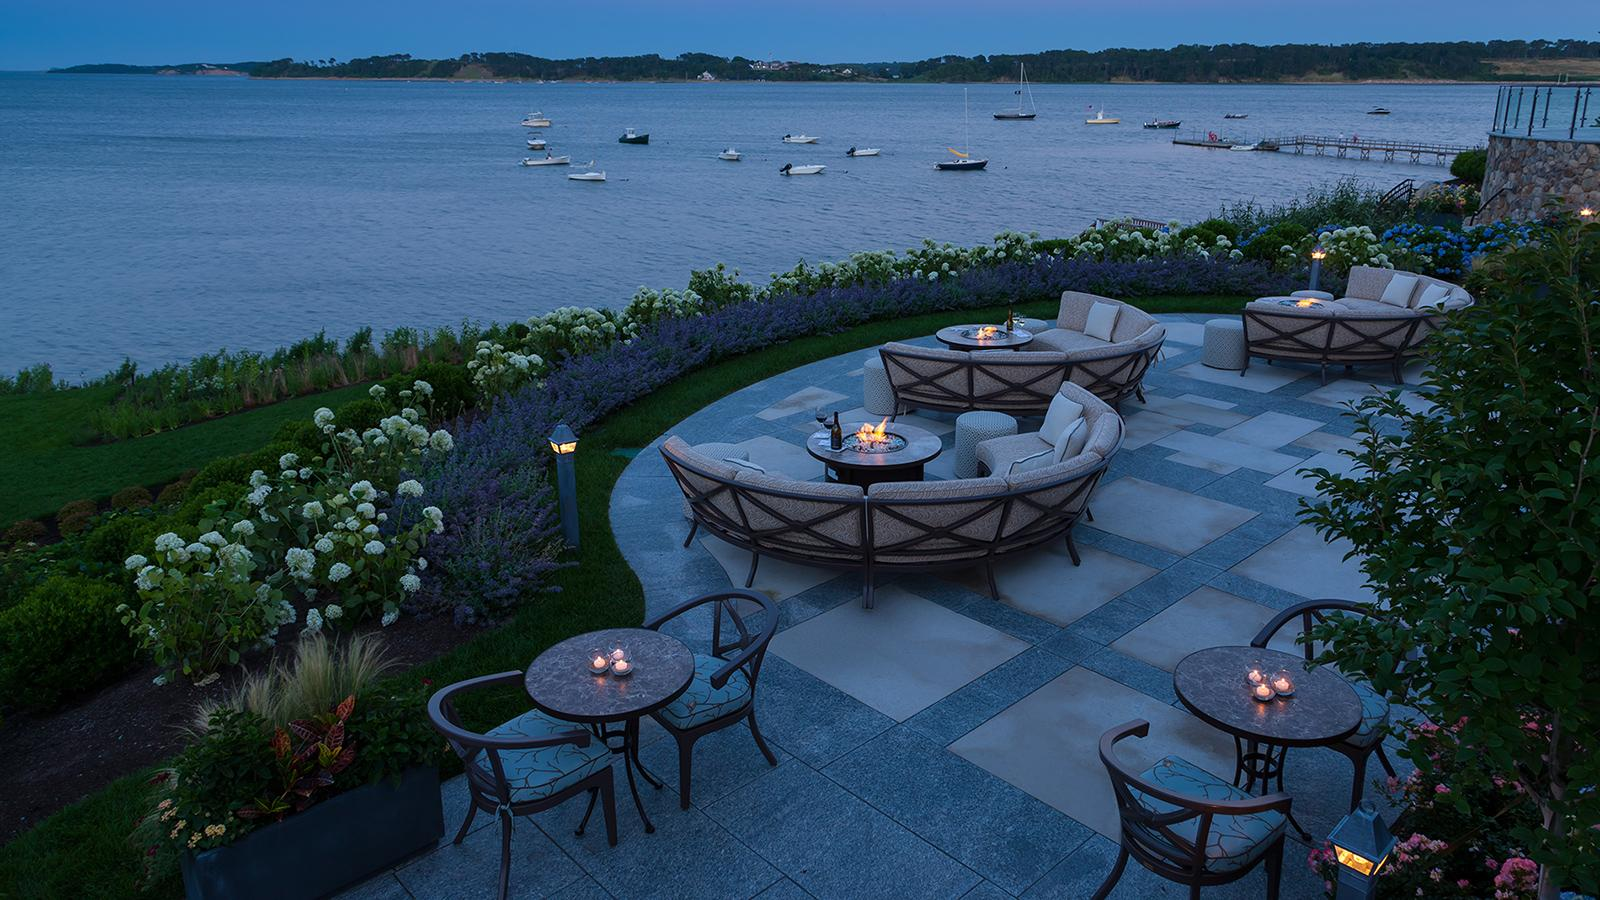 The Wequassett Resort and Golf Club in Harwich, Massachusetts, has a cigar-friendly area of semi-circular couches around firepits, angled for a view of the tranquil waters of Pleasant Bay.